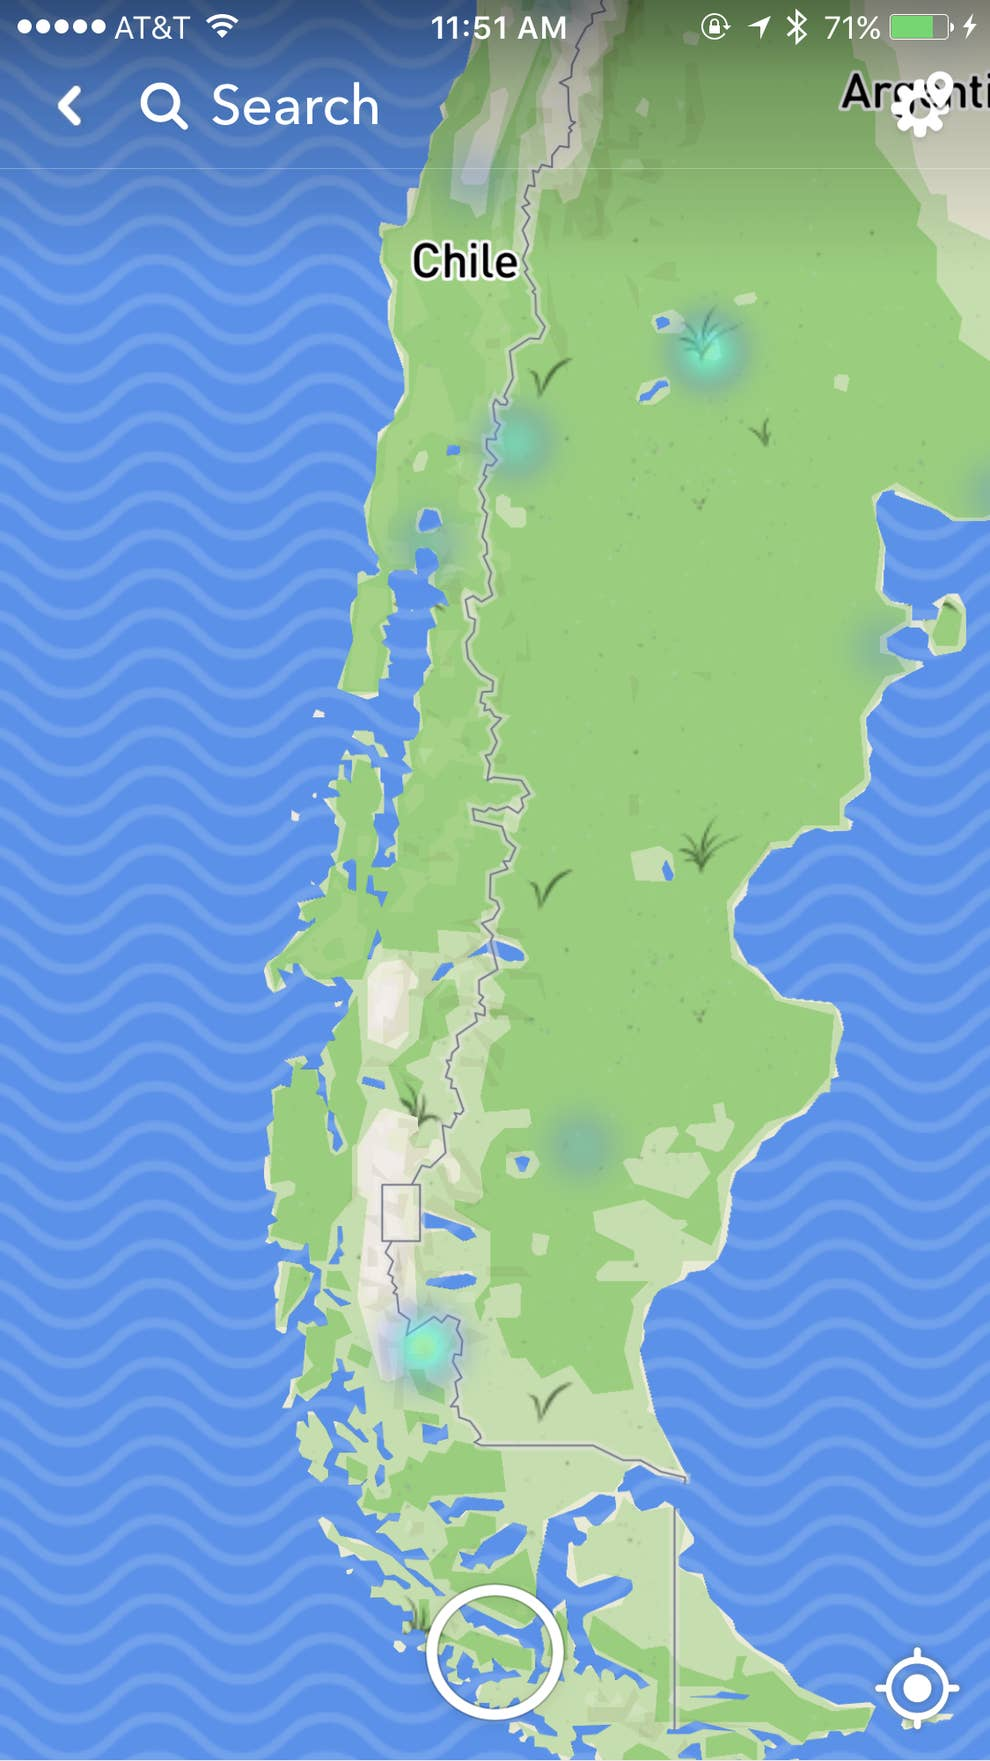 Here's How To Use Snapchat's Map To Go On A Mini World Vacation